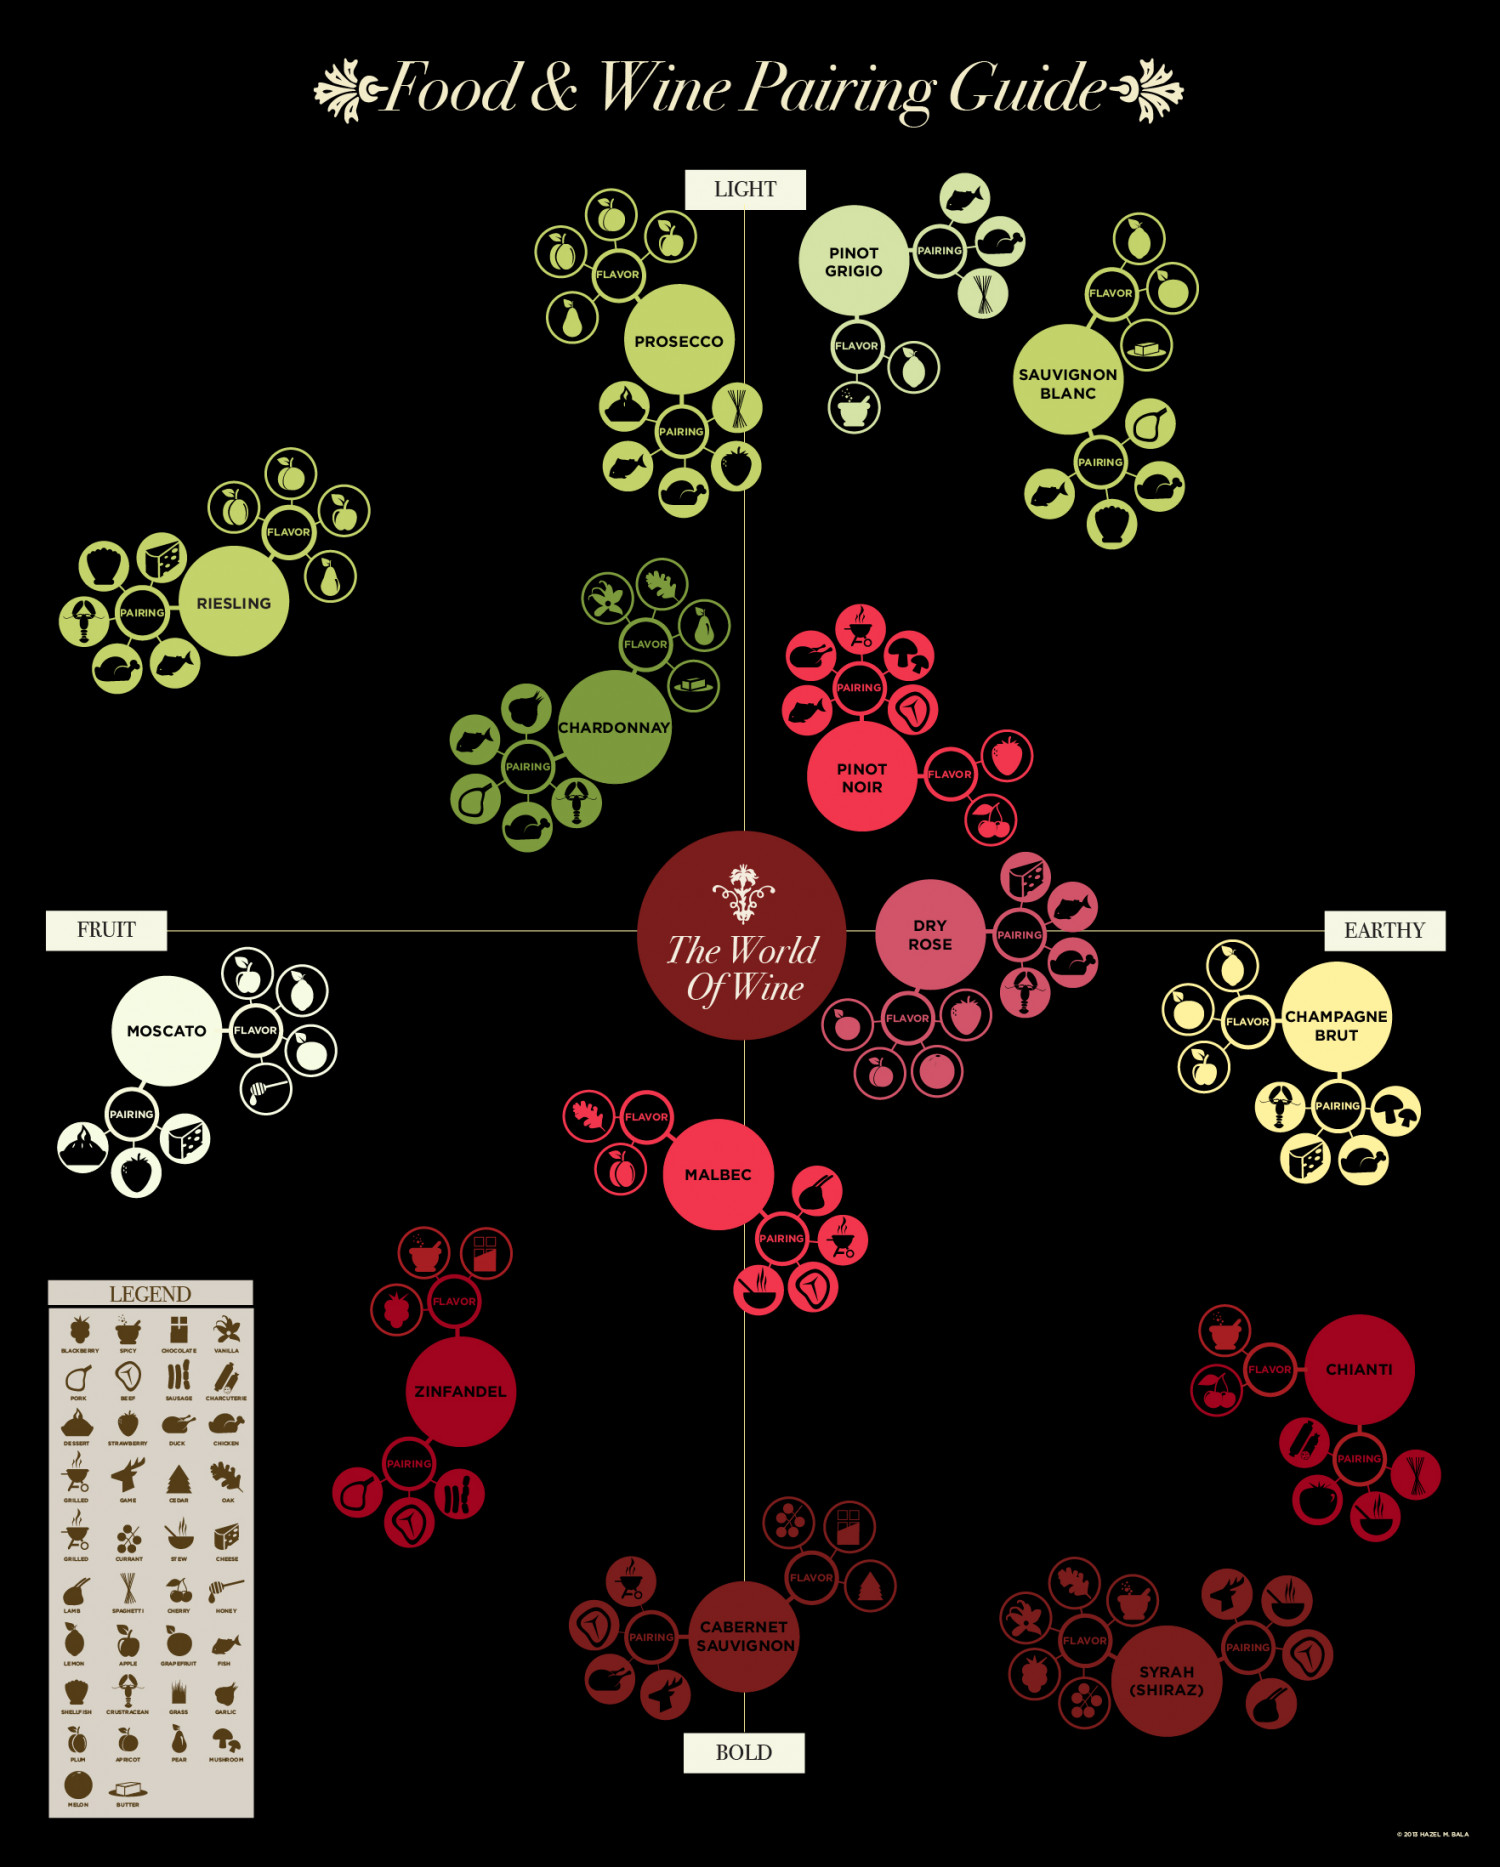 Food and Wine Pairing Guide Infographic